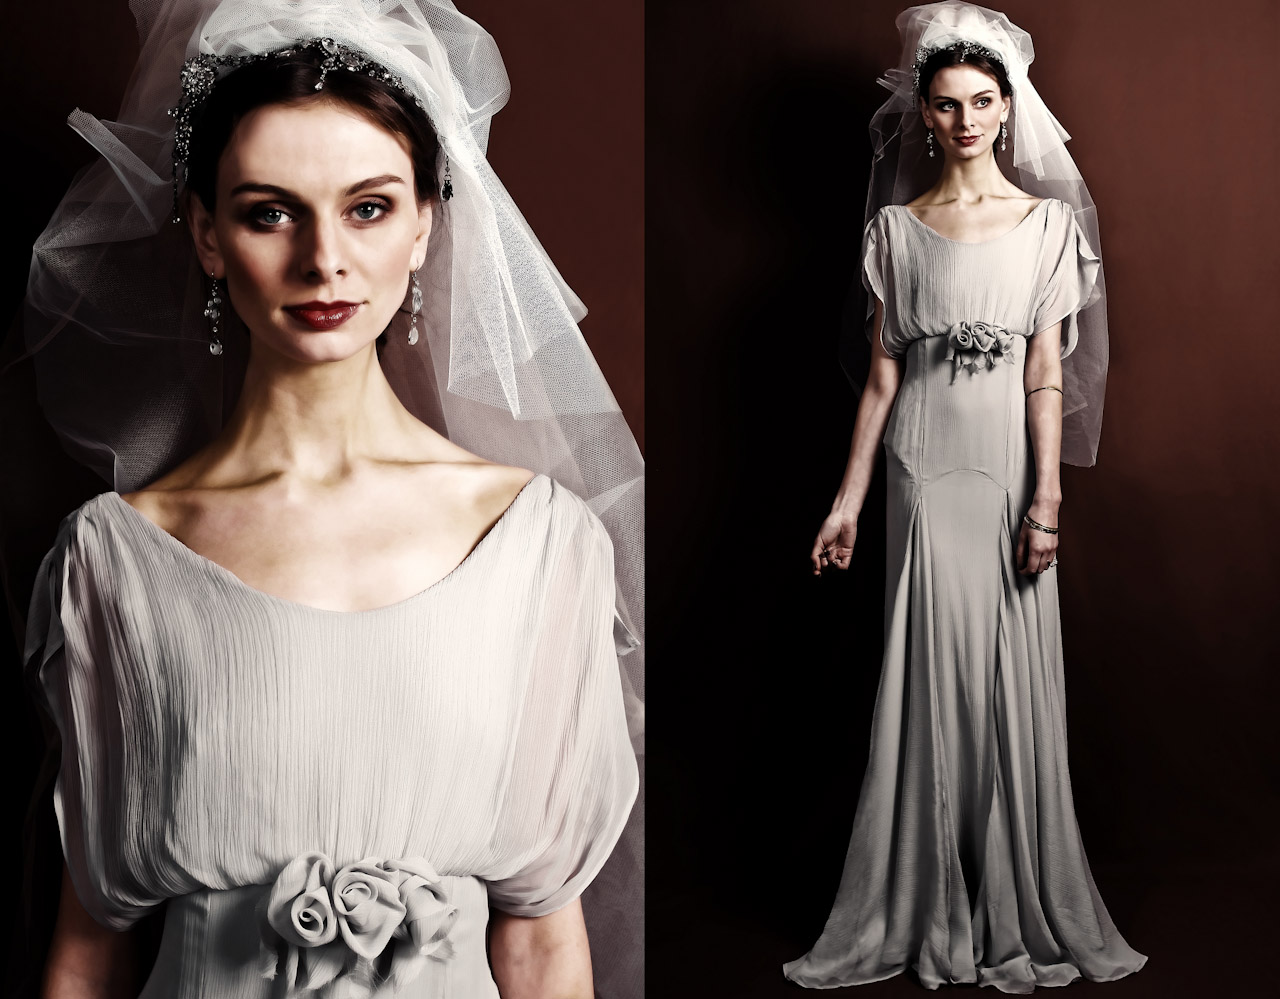 Belle-2011-wedding-dresses-romantic-vintage-inspired-bridal-gown.original